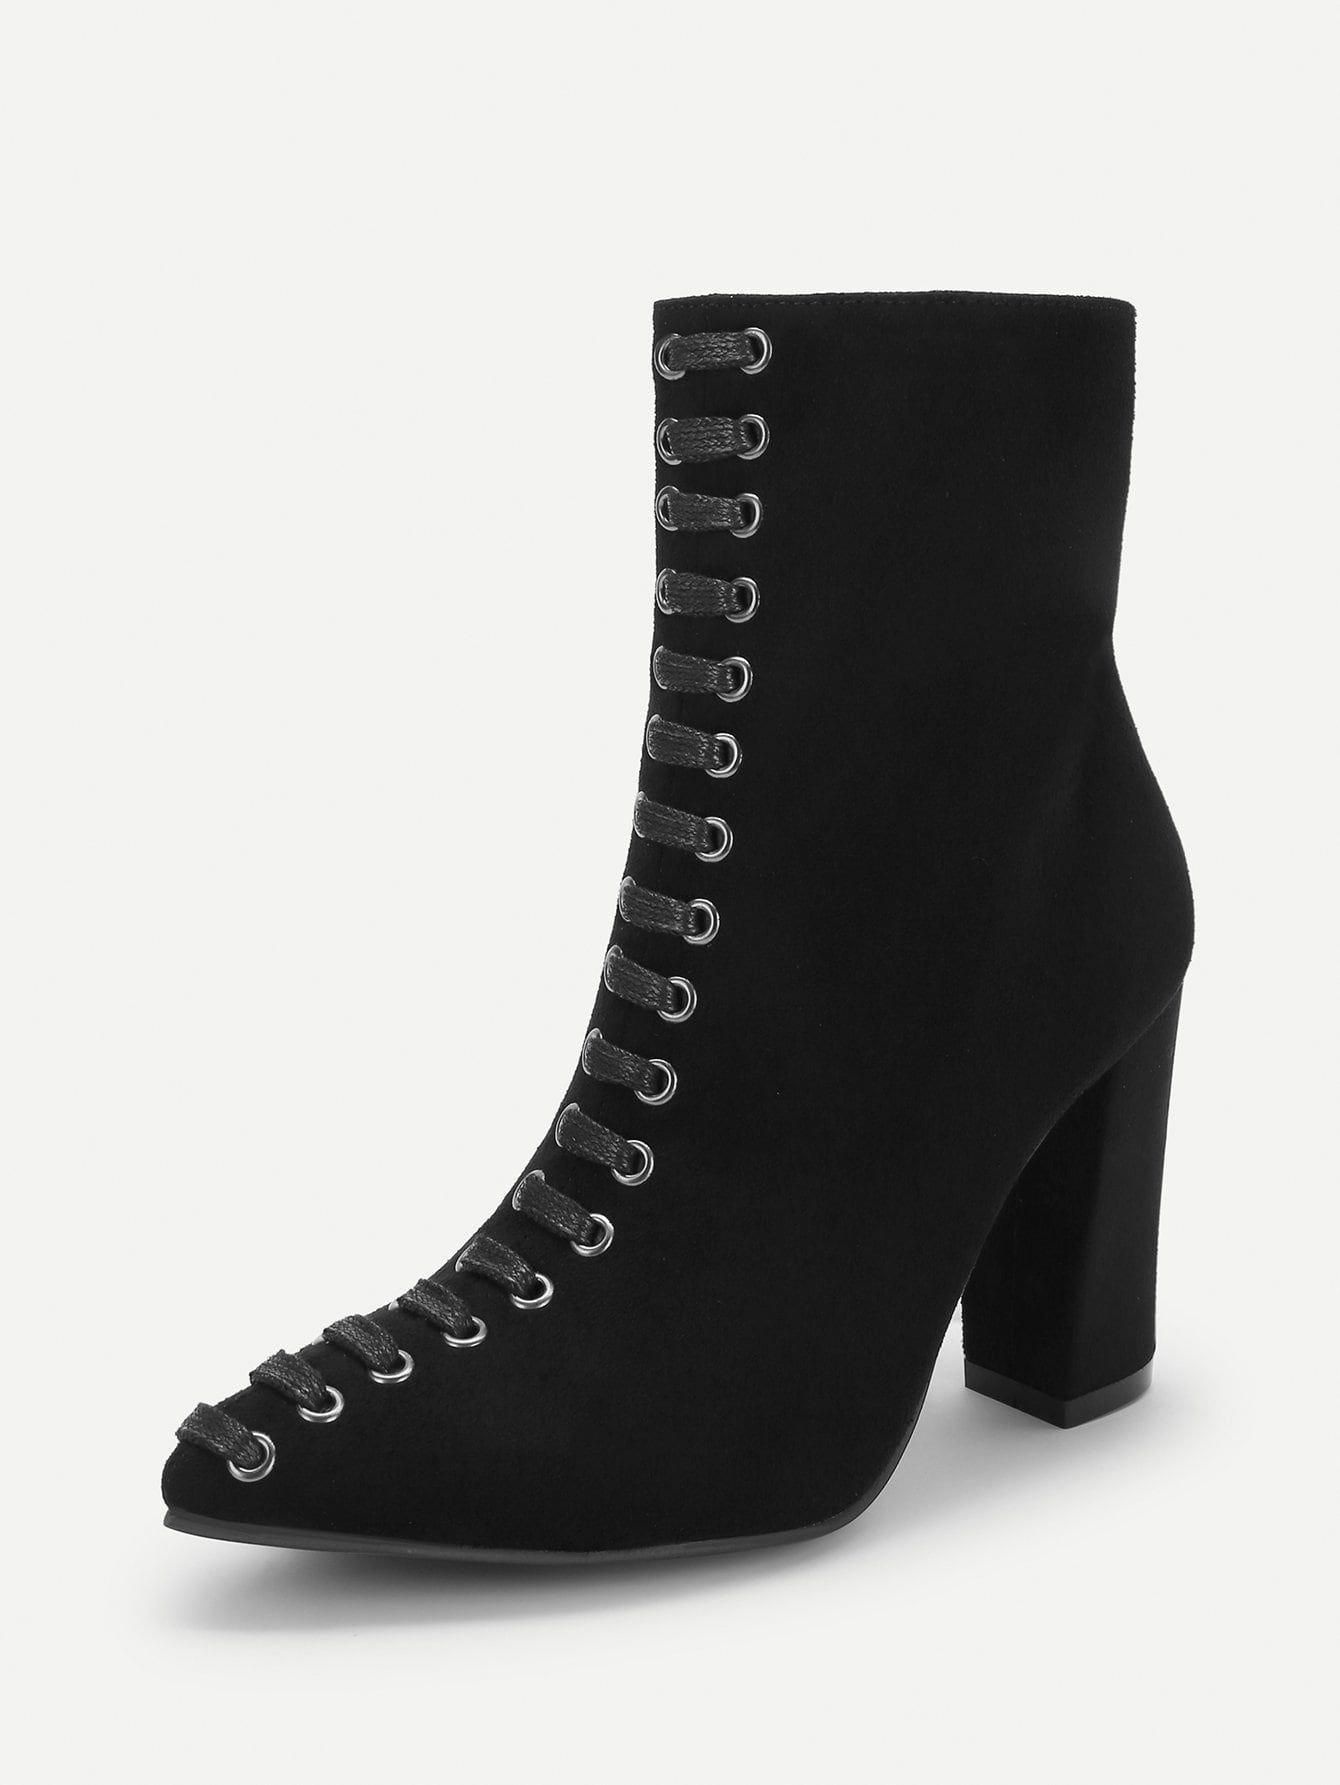 527fe84b4d0 Workwear Point Toe Plain Ankle Side zipper Black High Heel Chunky Lace Up Side  Zip Boots